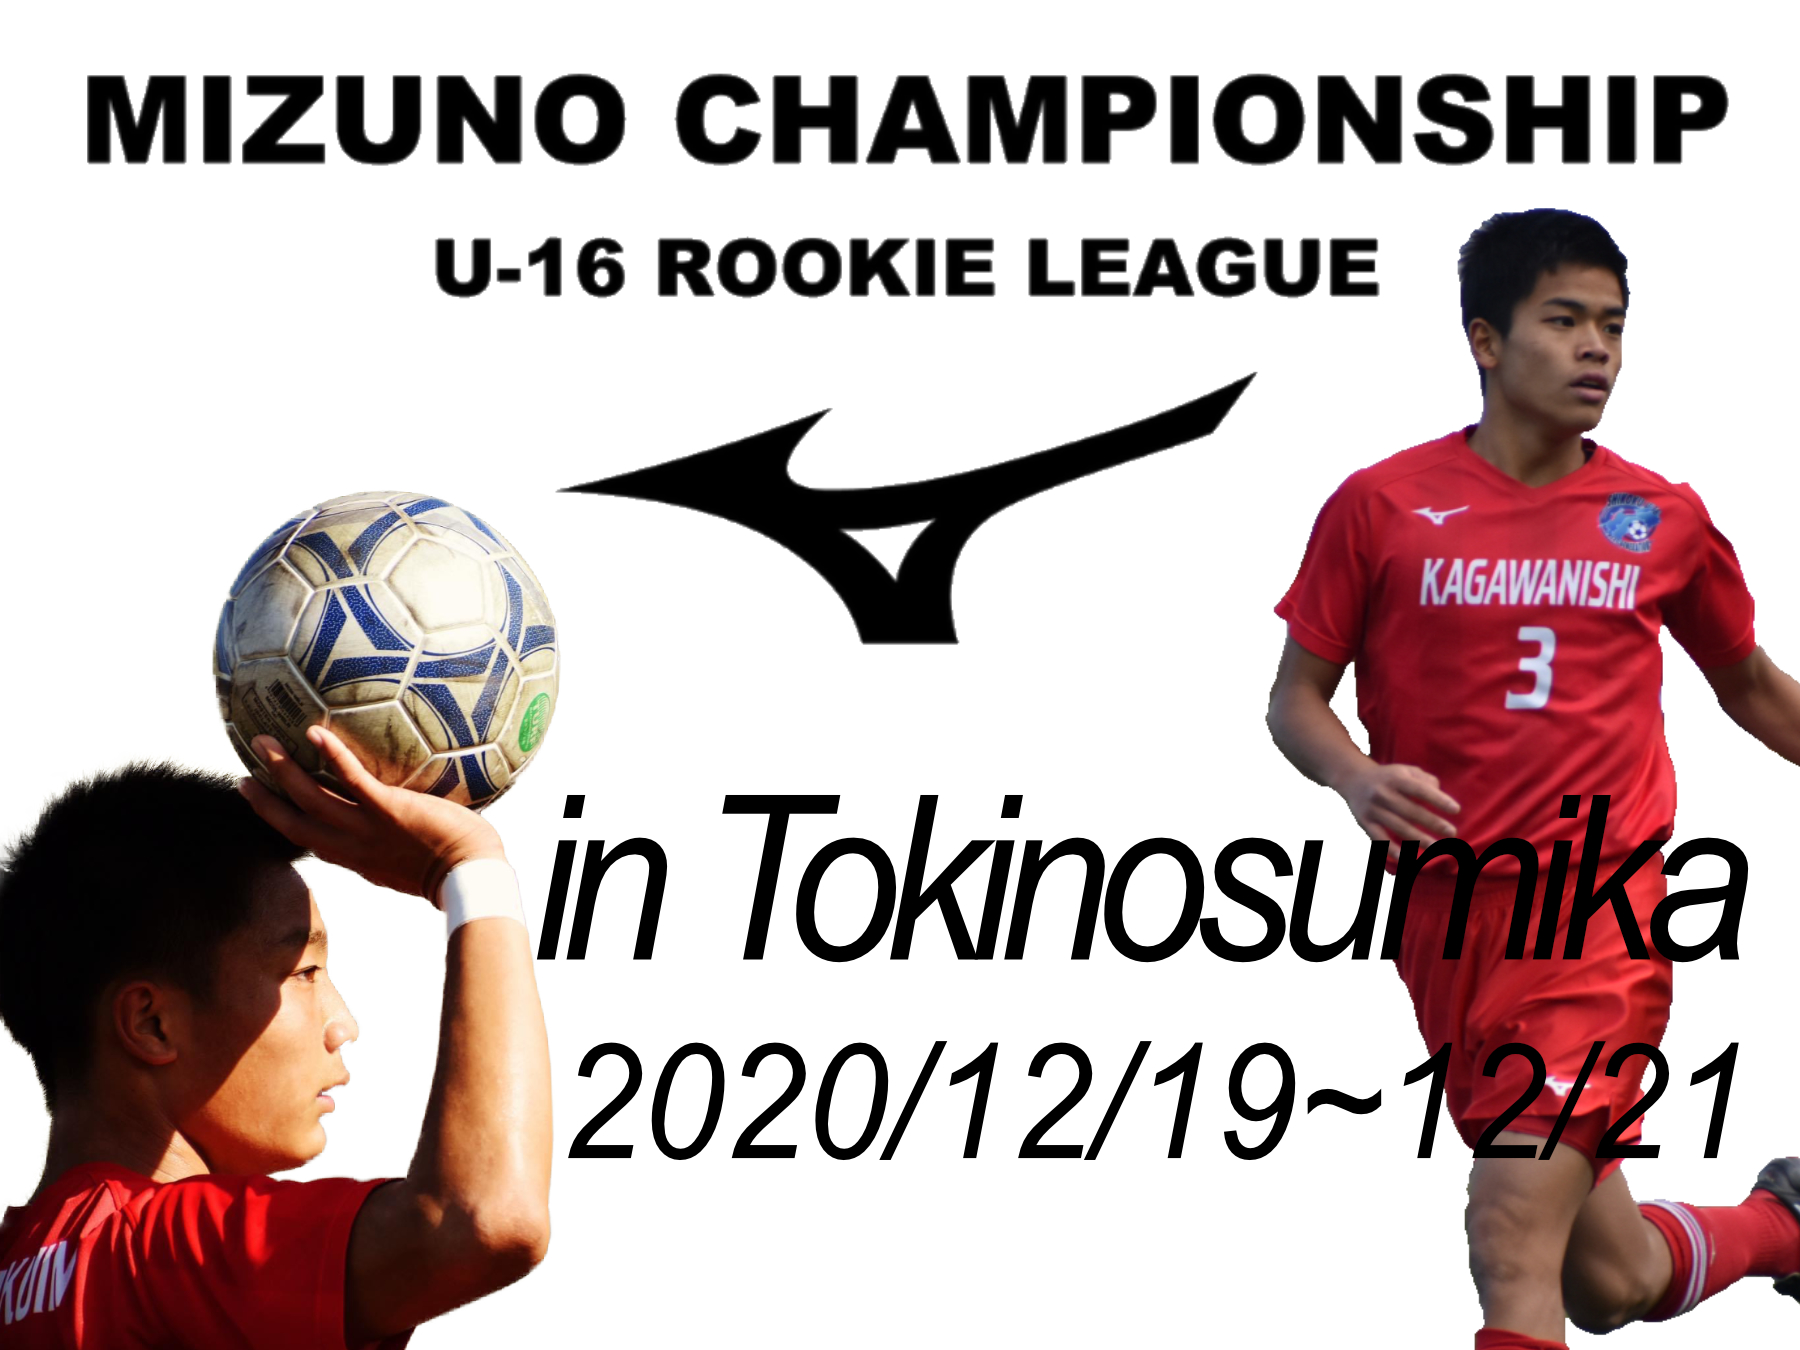 MIZUNO champion ship 開幕